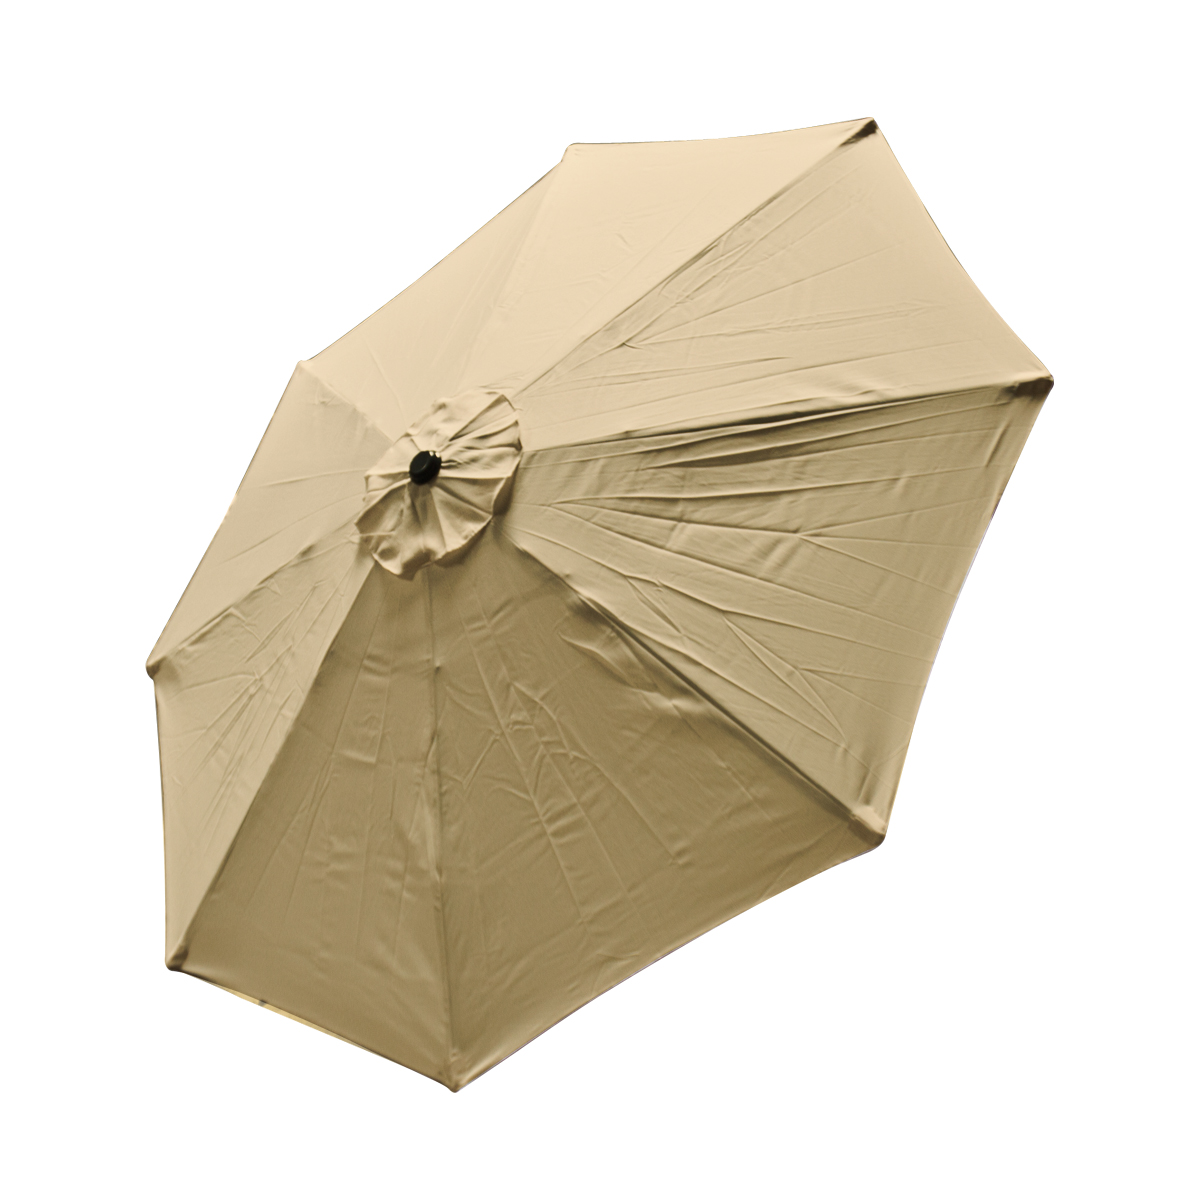 Patio Market Outdoor 9 FT 8 Ribs Umbrella Cover Canopy Tan